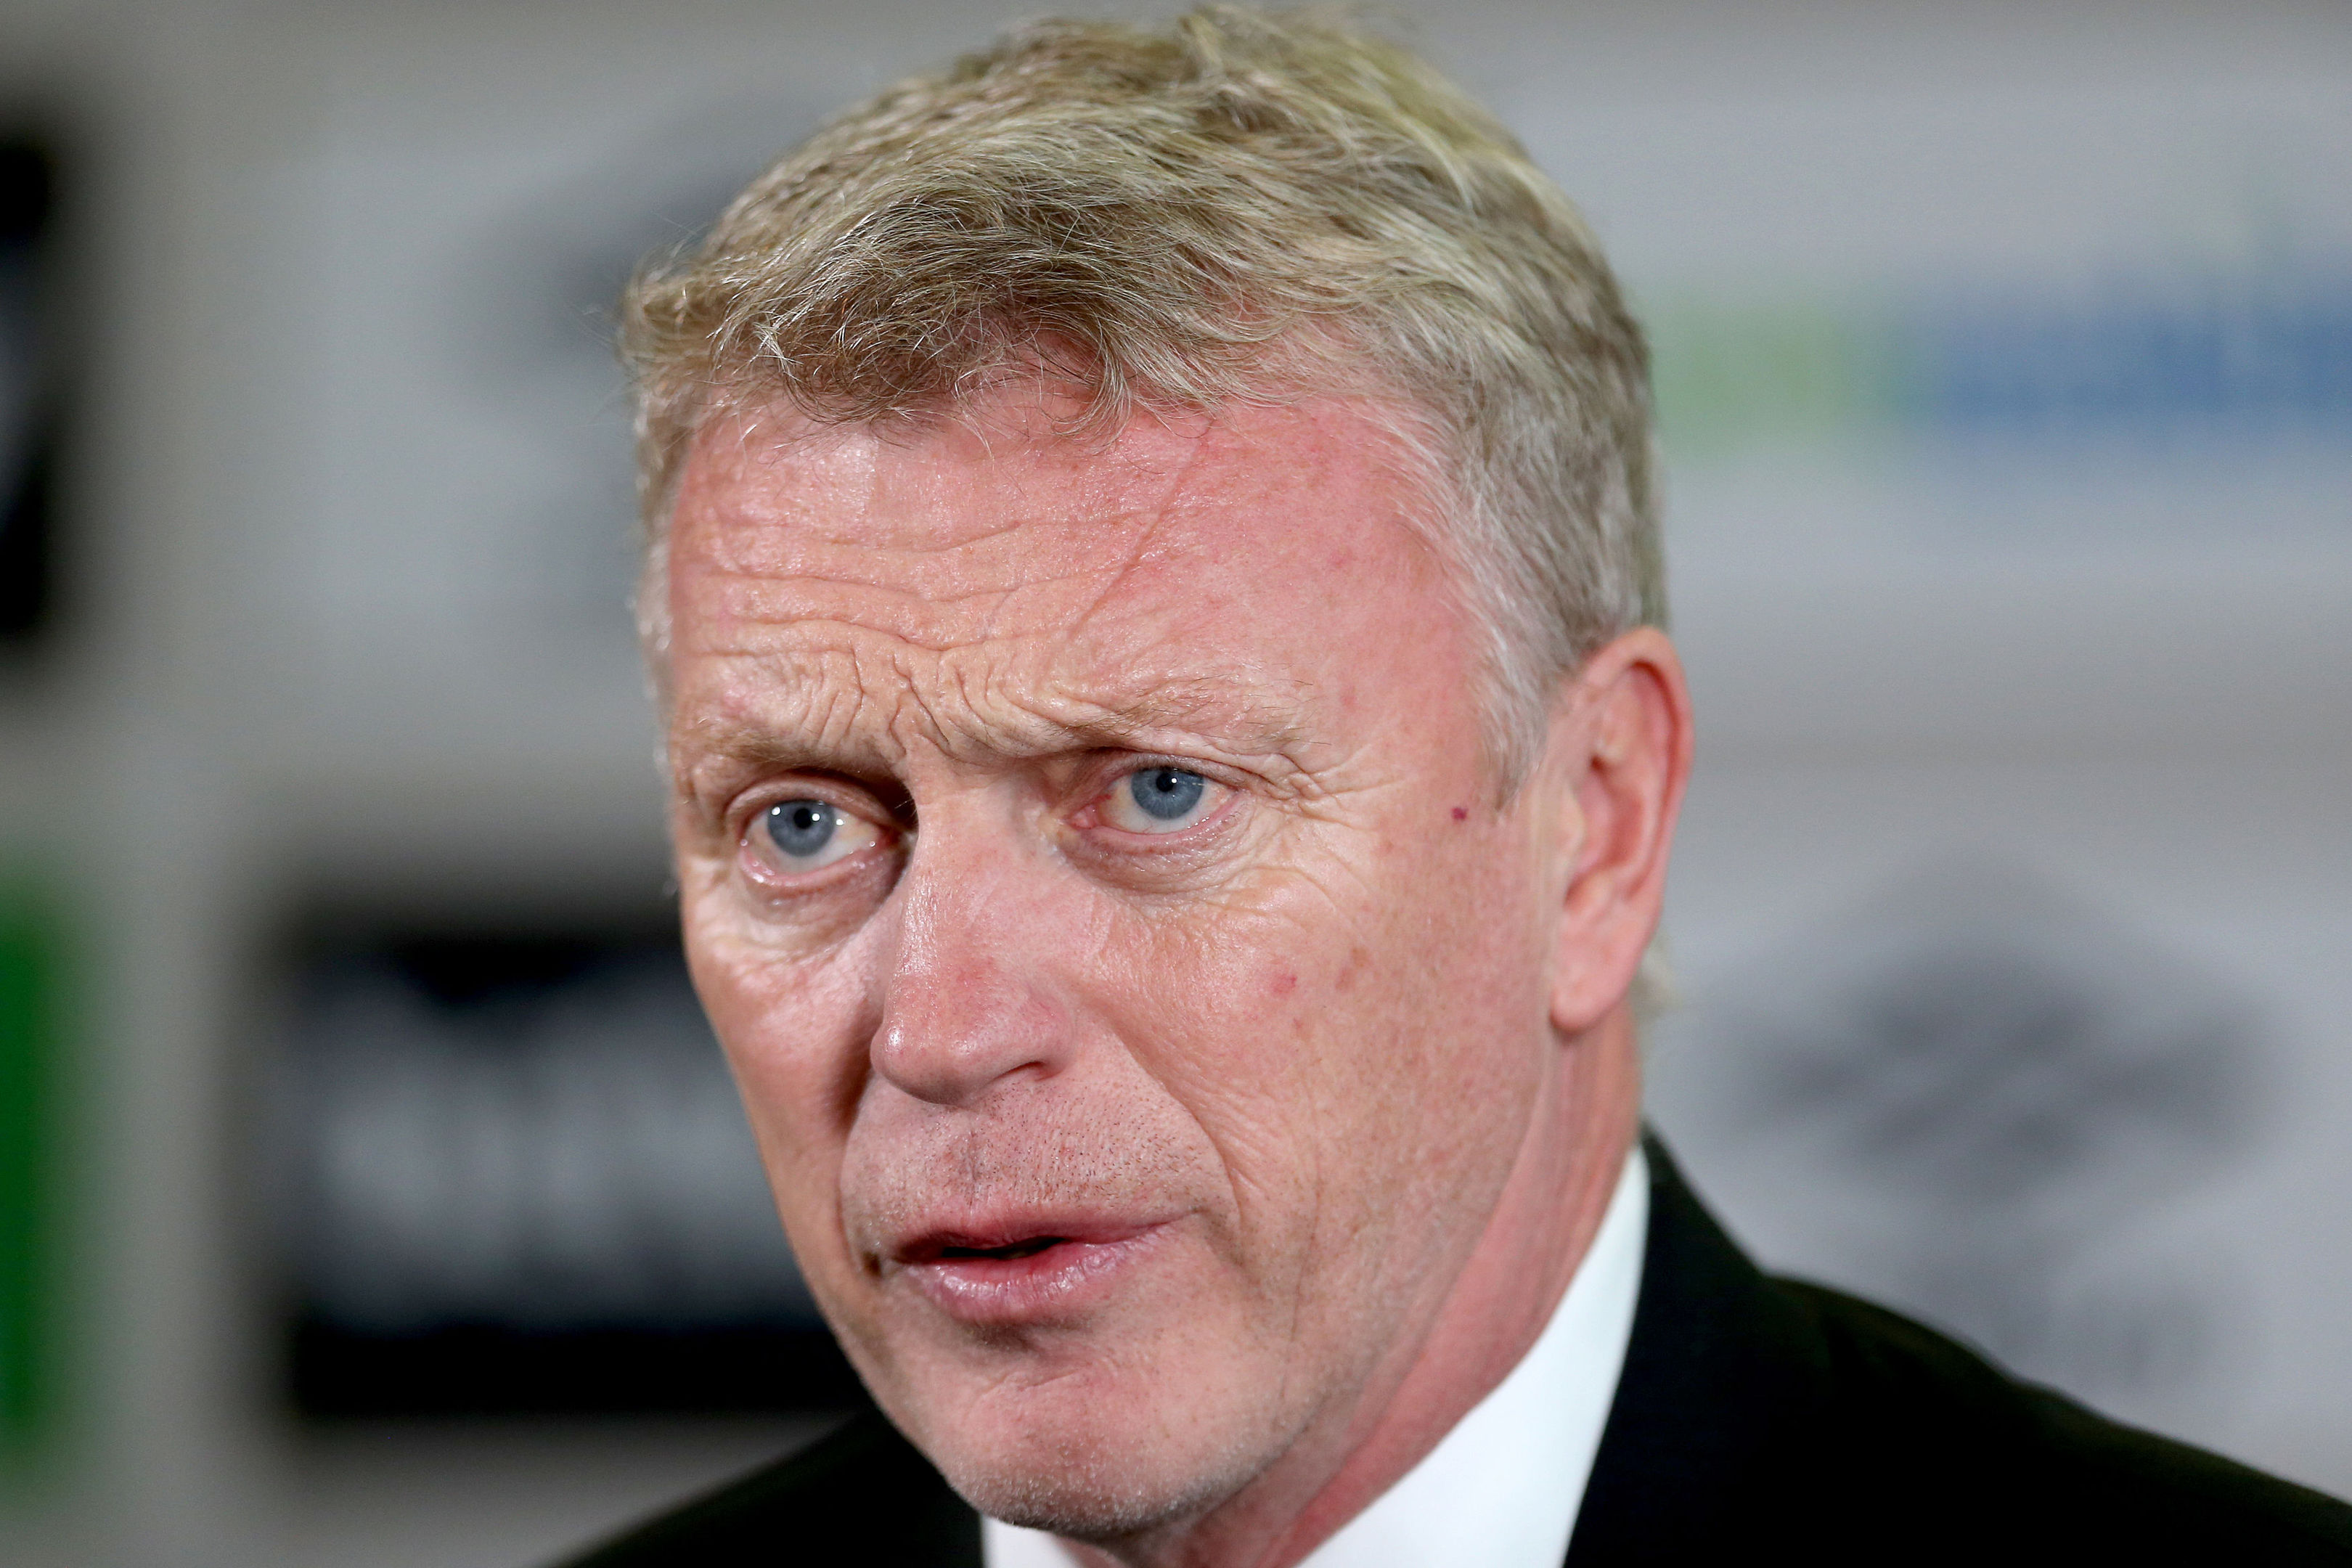 David Moyes was forced to issue a desperate plea for unity after just one game in charge of West Ham (Steven Paston/PA Wire)